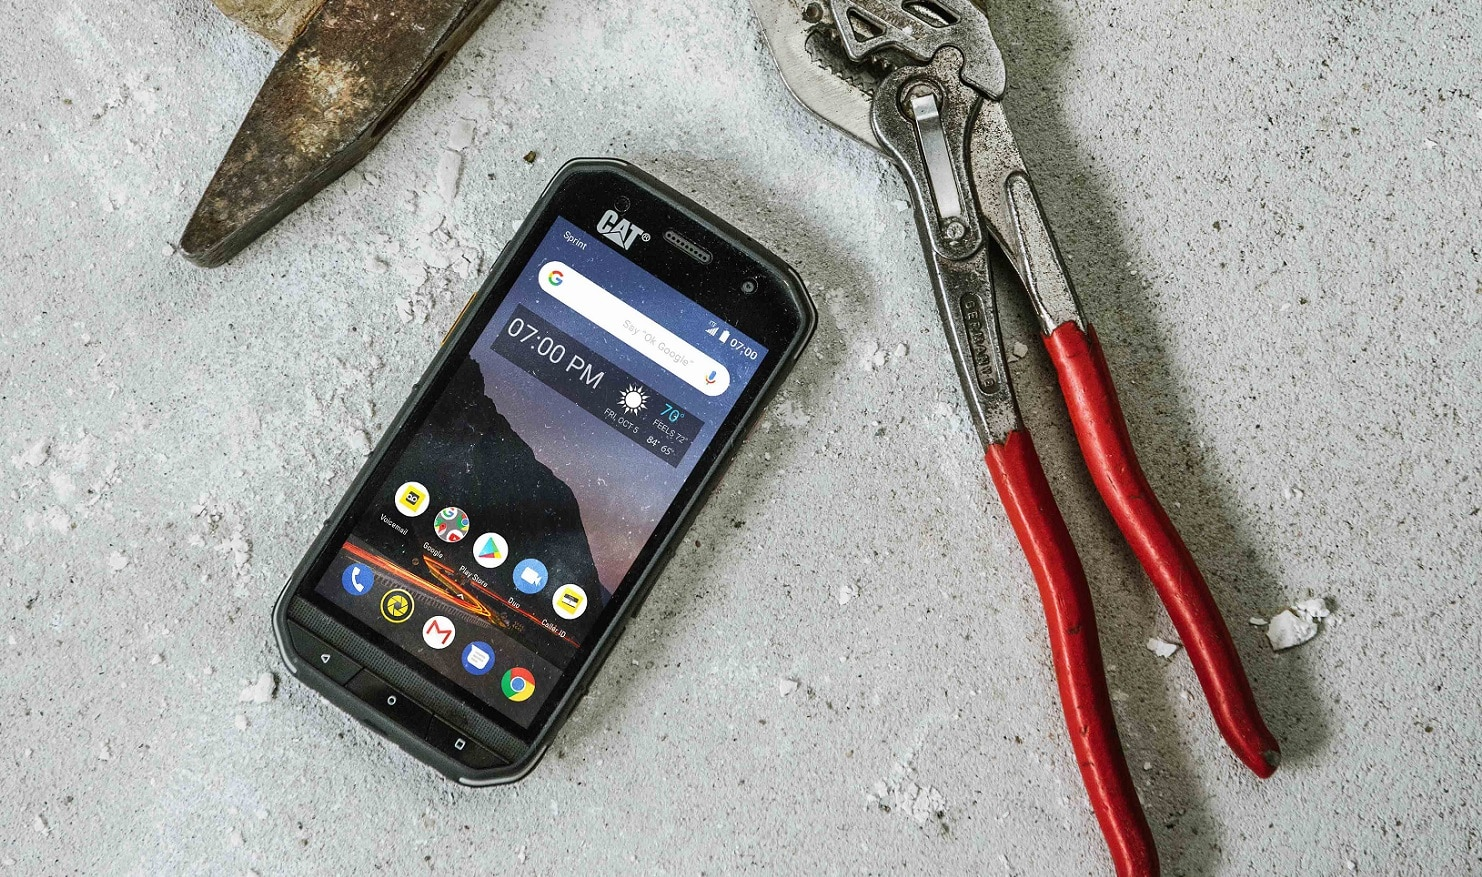 cat s48c smartphone on table with tools